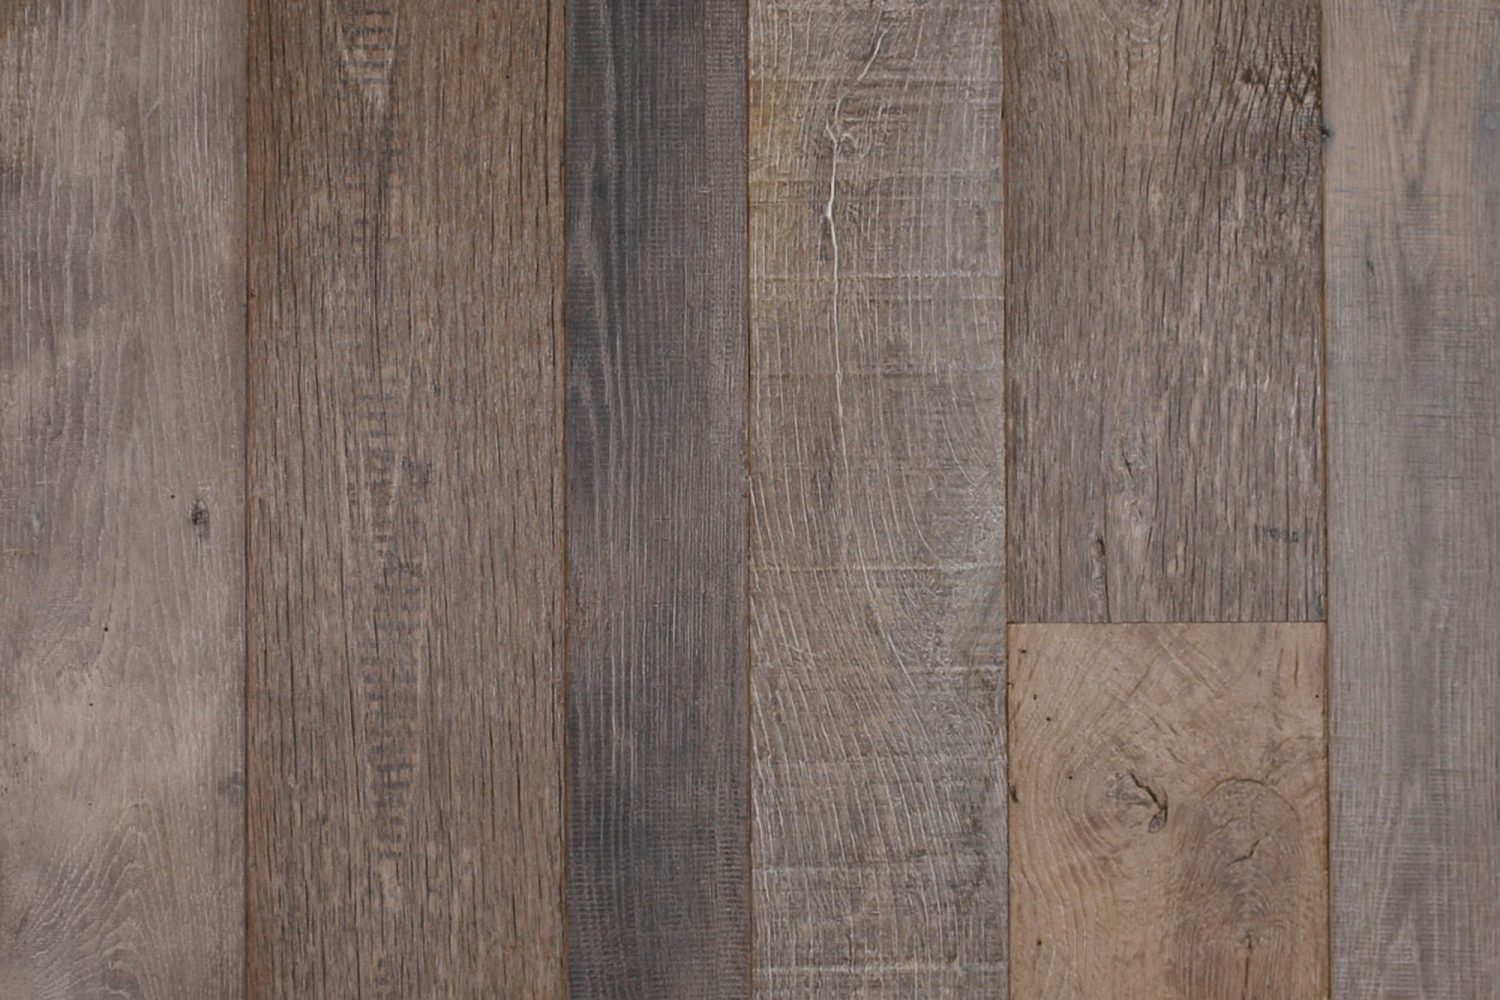 Engineered oak reclaimed floor board